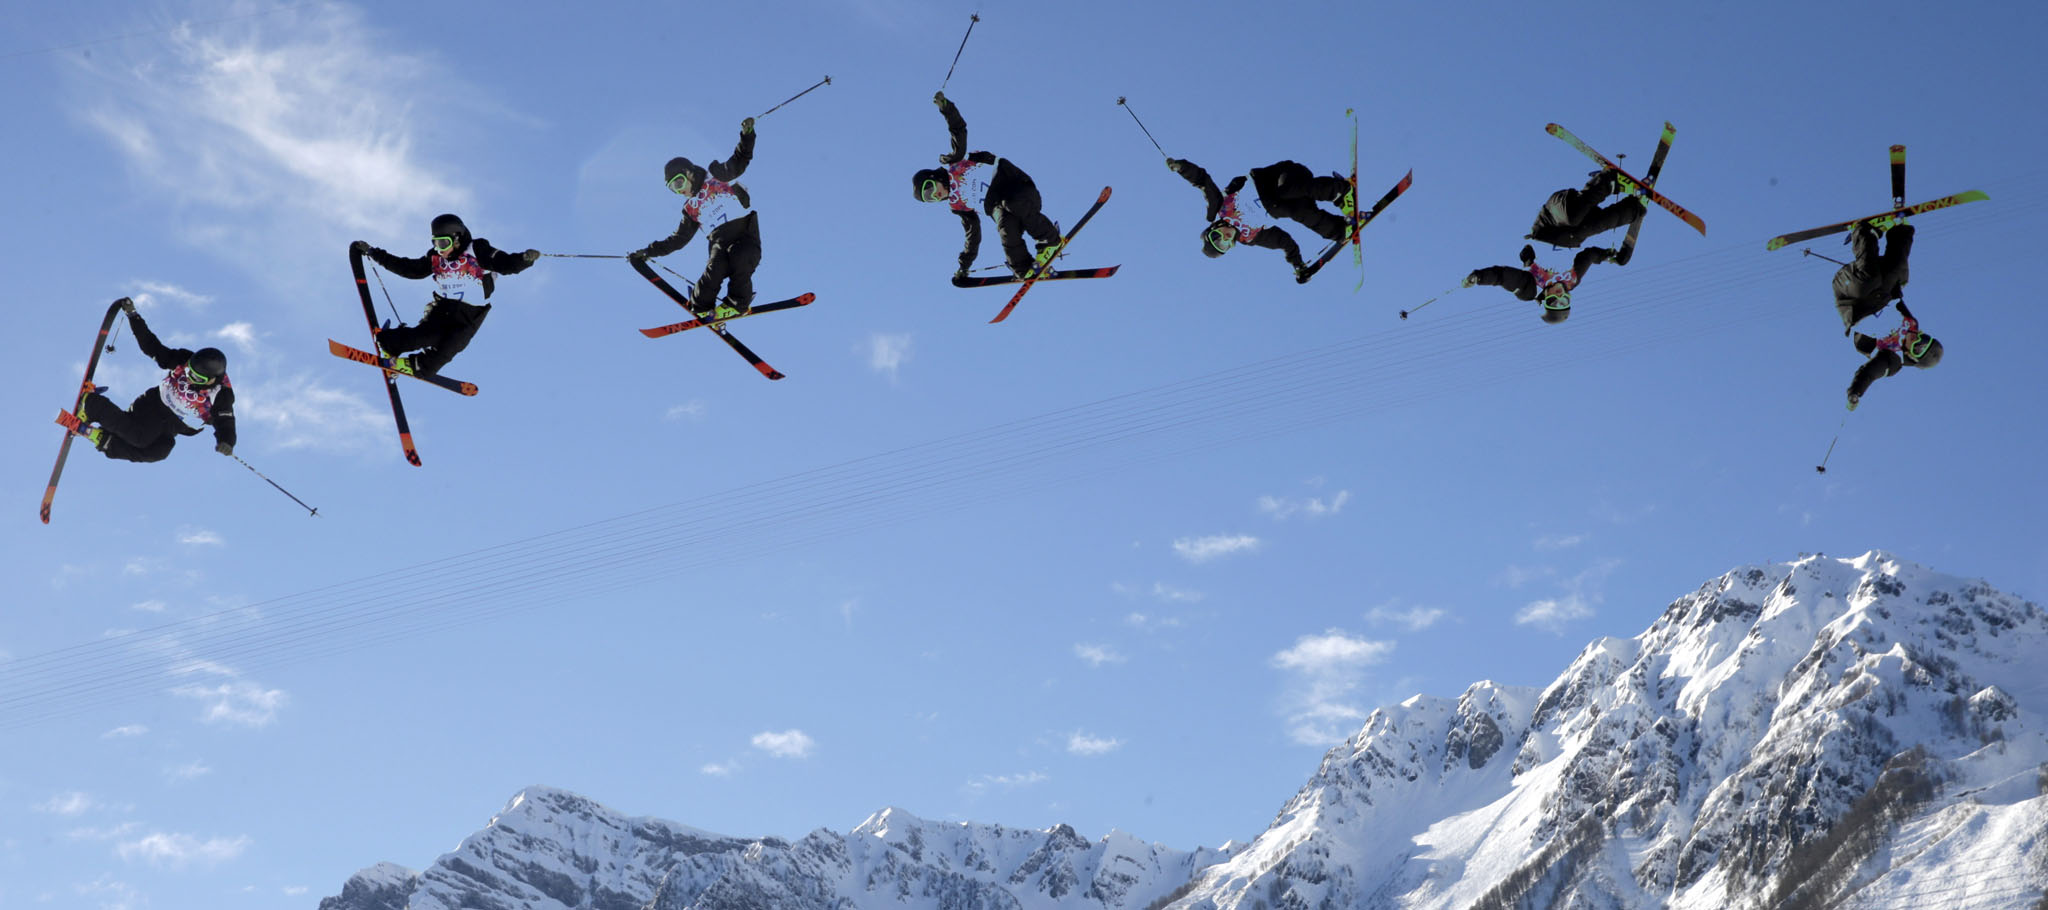 Antti Ollila...In this image made with a multiple exposure, Finland's Antti Ollila competes in the men's ski slopestyle qualifying at the Rosa Khutor Extreme Park during the 2014 Winter Olympics, Thursday, Feb. 13, 2014, in Krasnaya Polyana, Russia. (AP Photo/Gero Breloer)